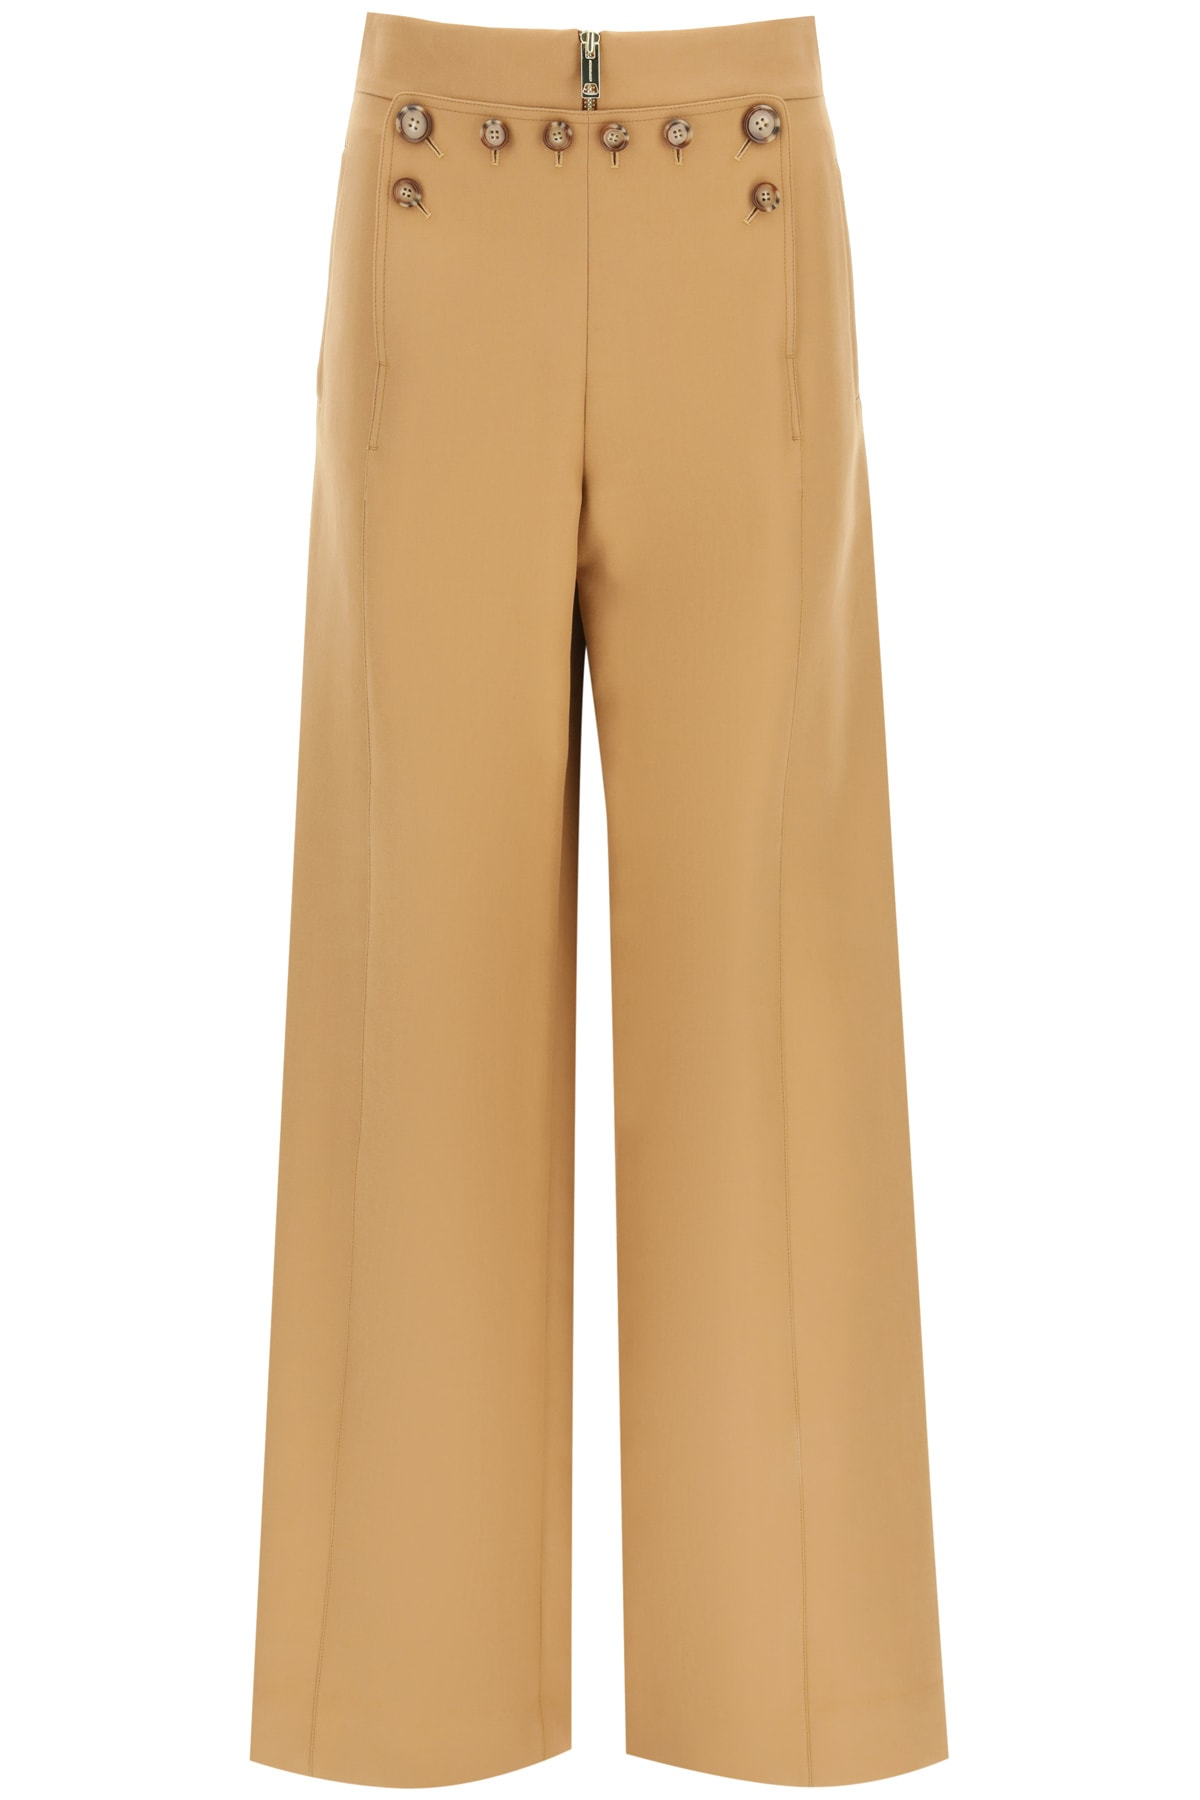 Burberry Sailor Trousers With Buttons